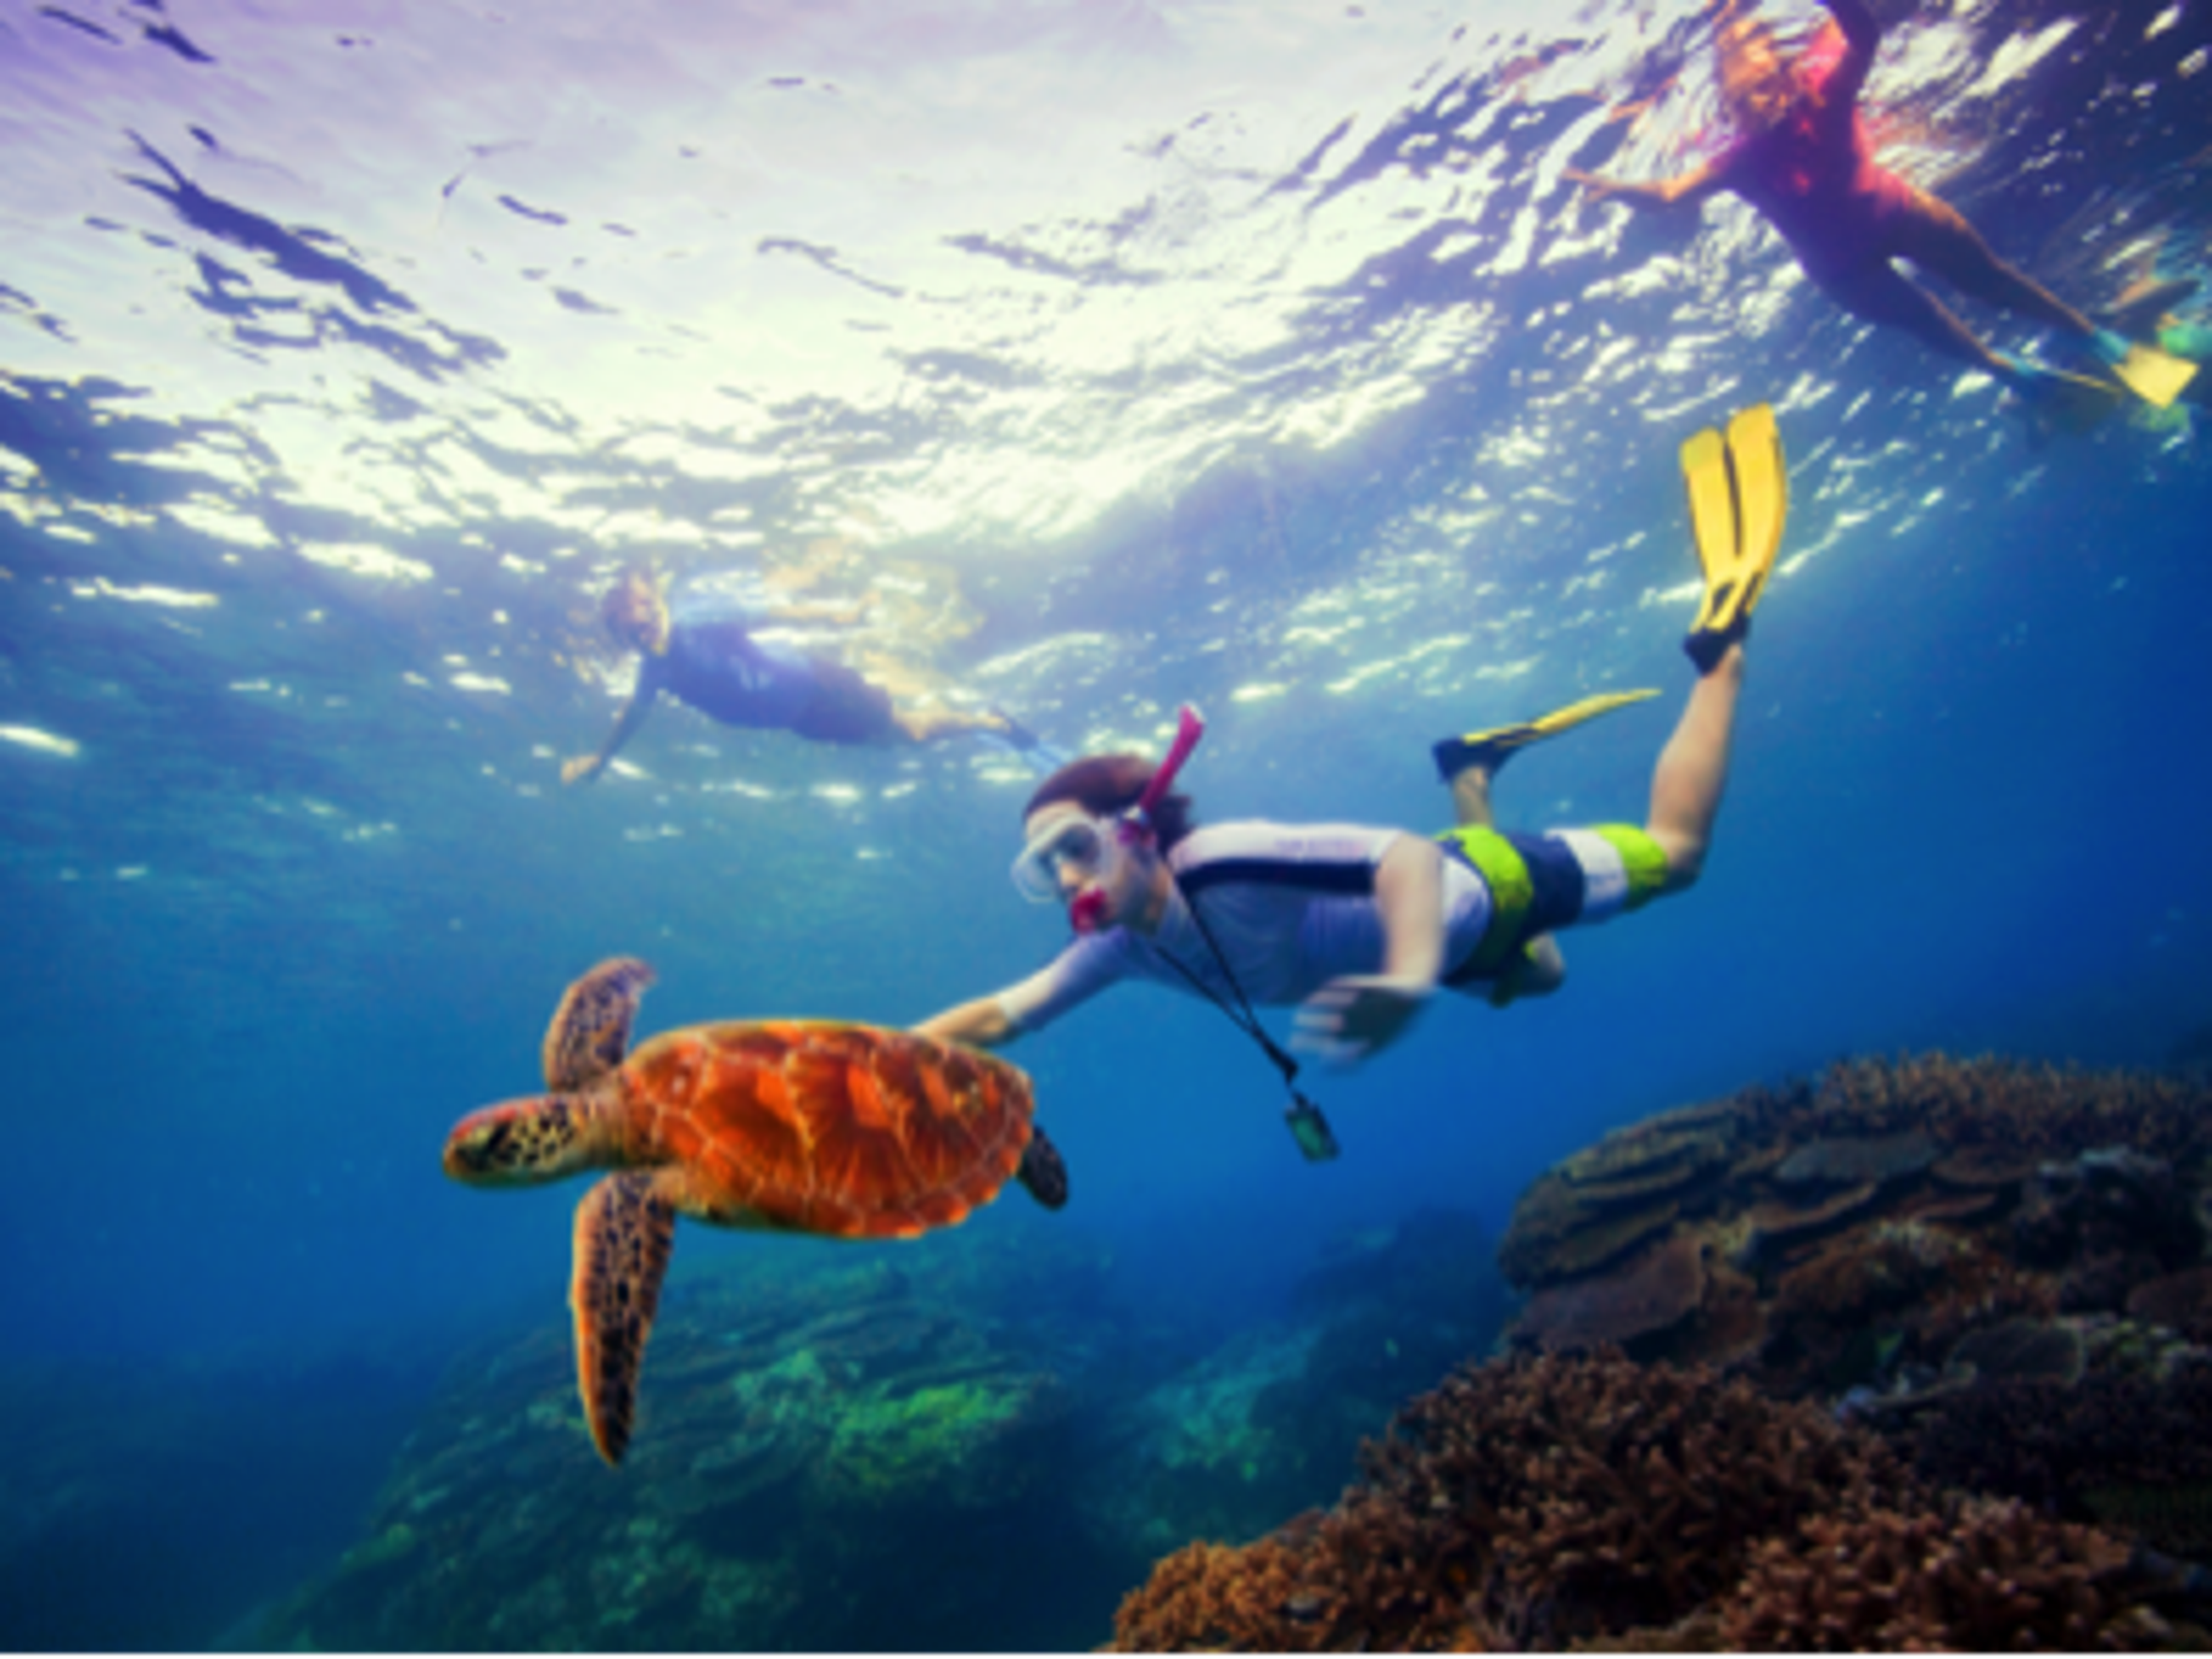 Take a day trip to the reef where you can snorkel